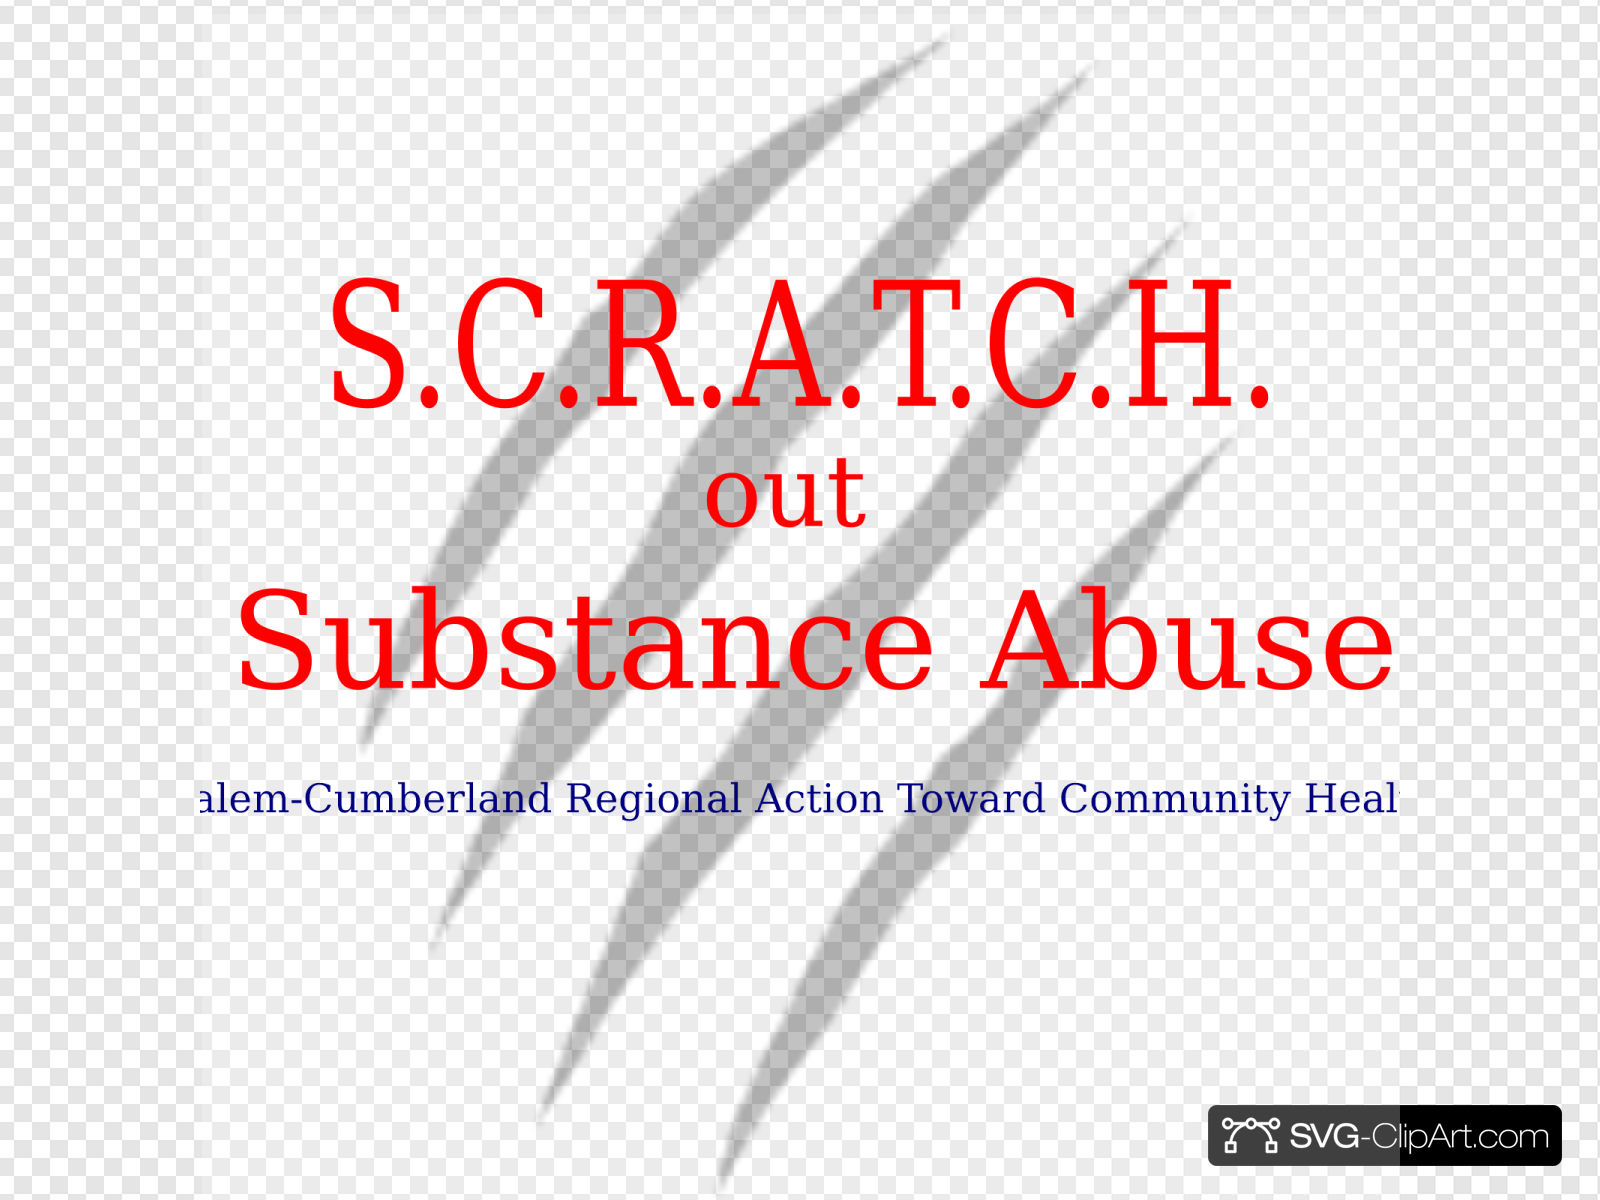 Scratch Out Substance Abuse Logo3 Clip art, Icon and SVG.